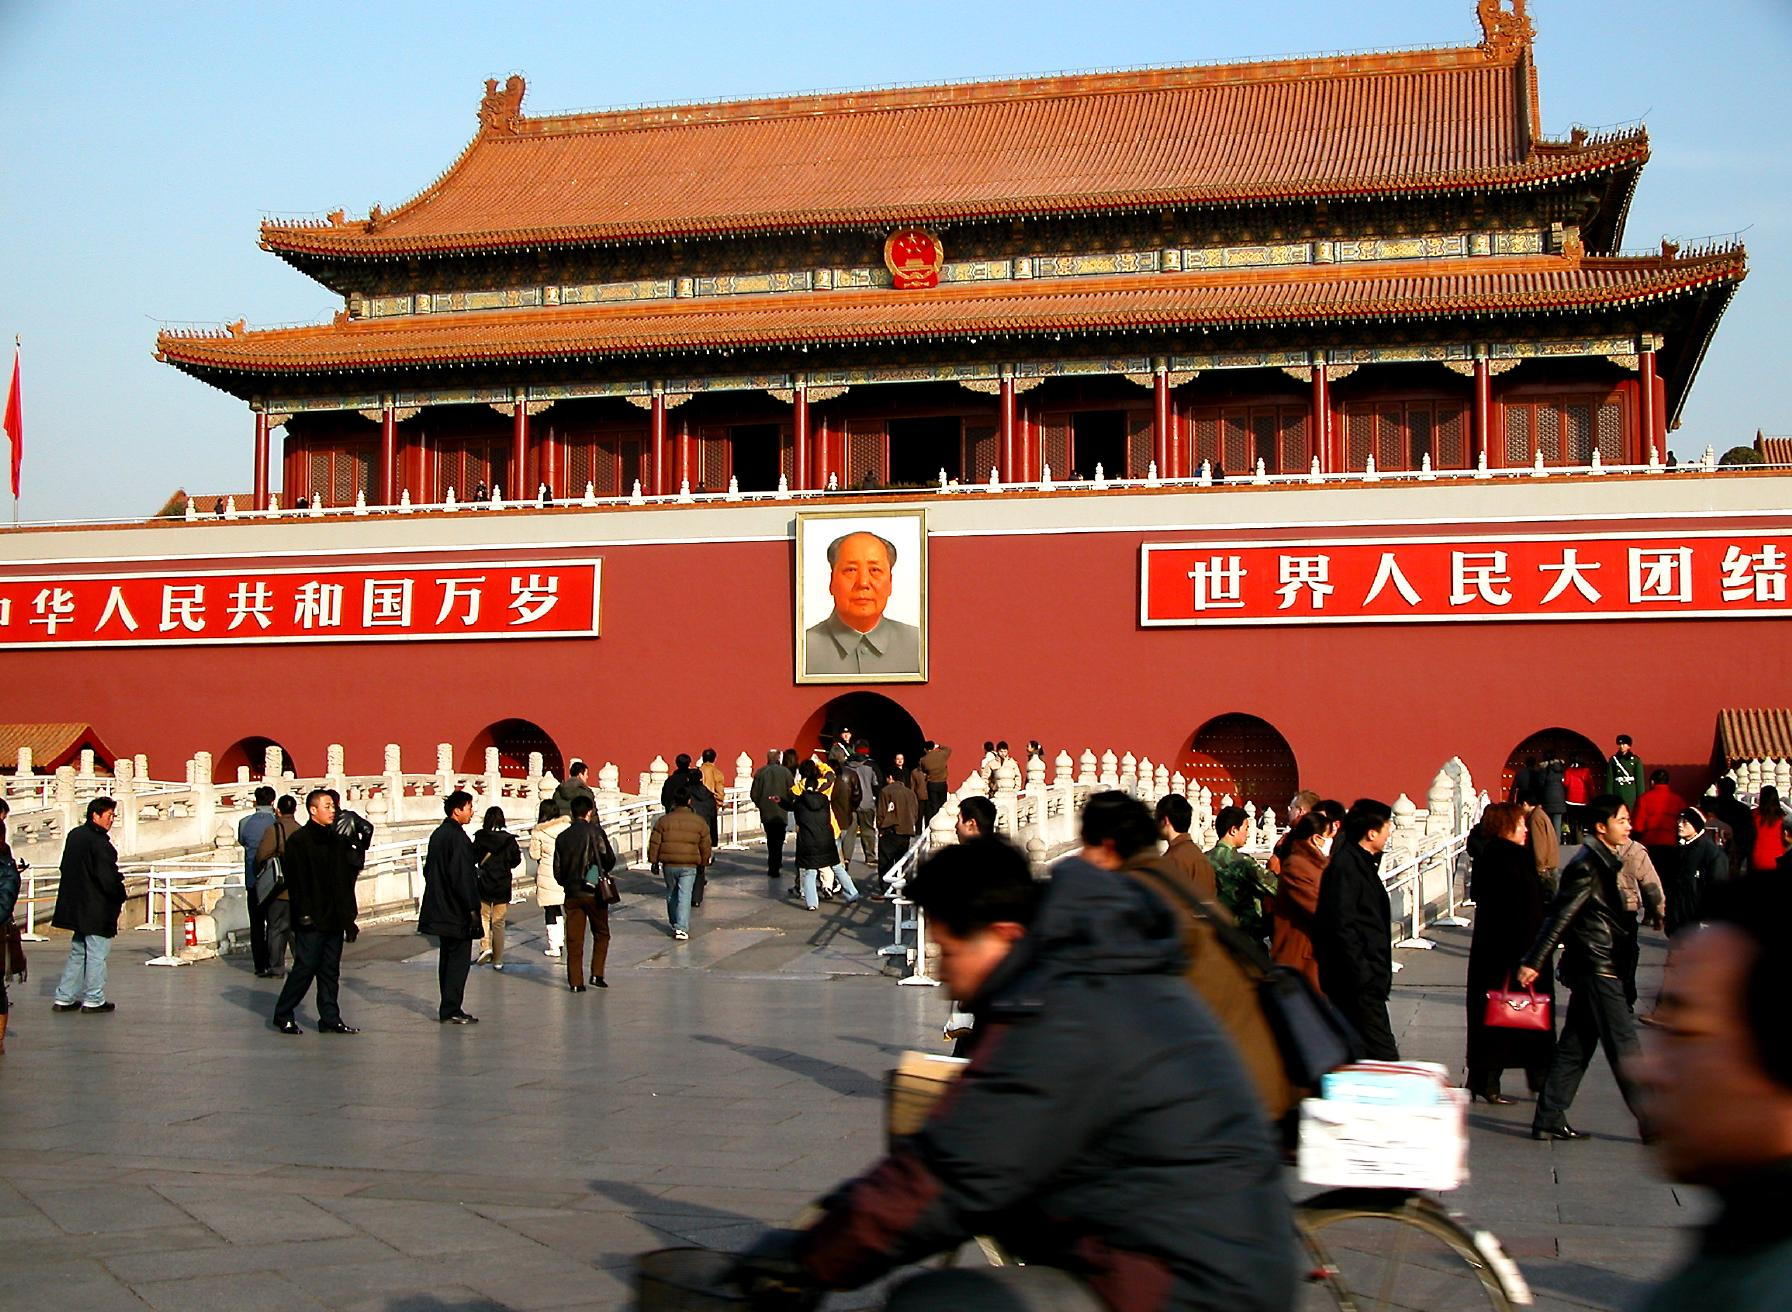 Photograph of the front plaza of Forbidden City, Beijing